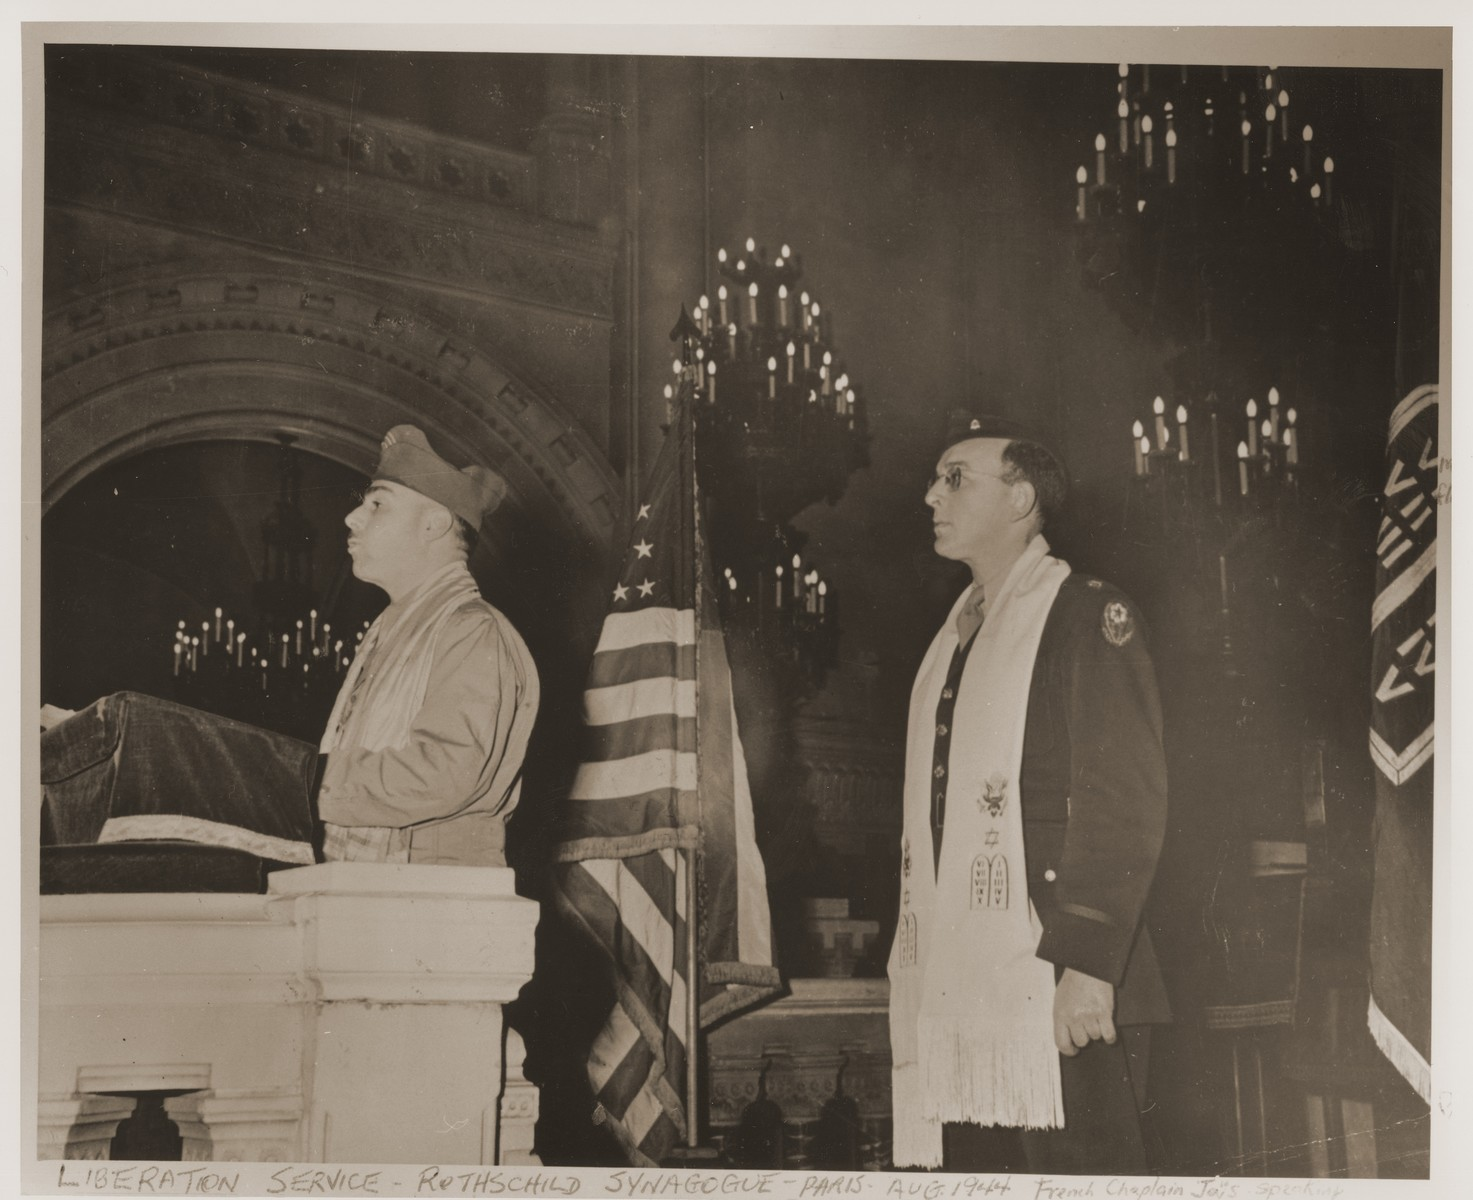 Chaplain Jais conducts a Jewish religious service at the Rothschild Synagogue in Paris soon after the liberation.